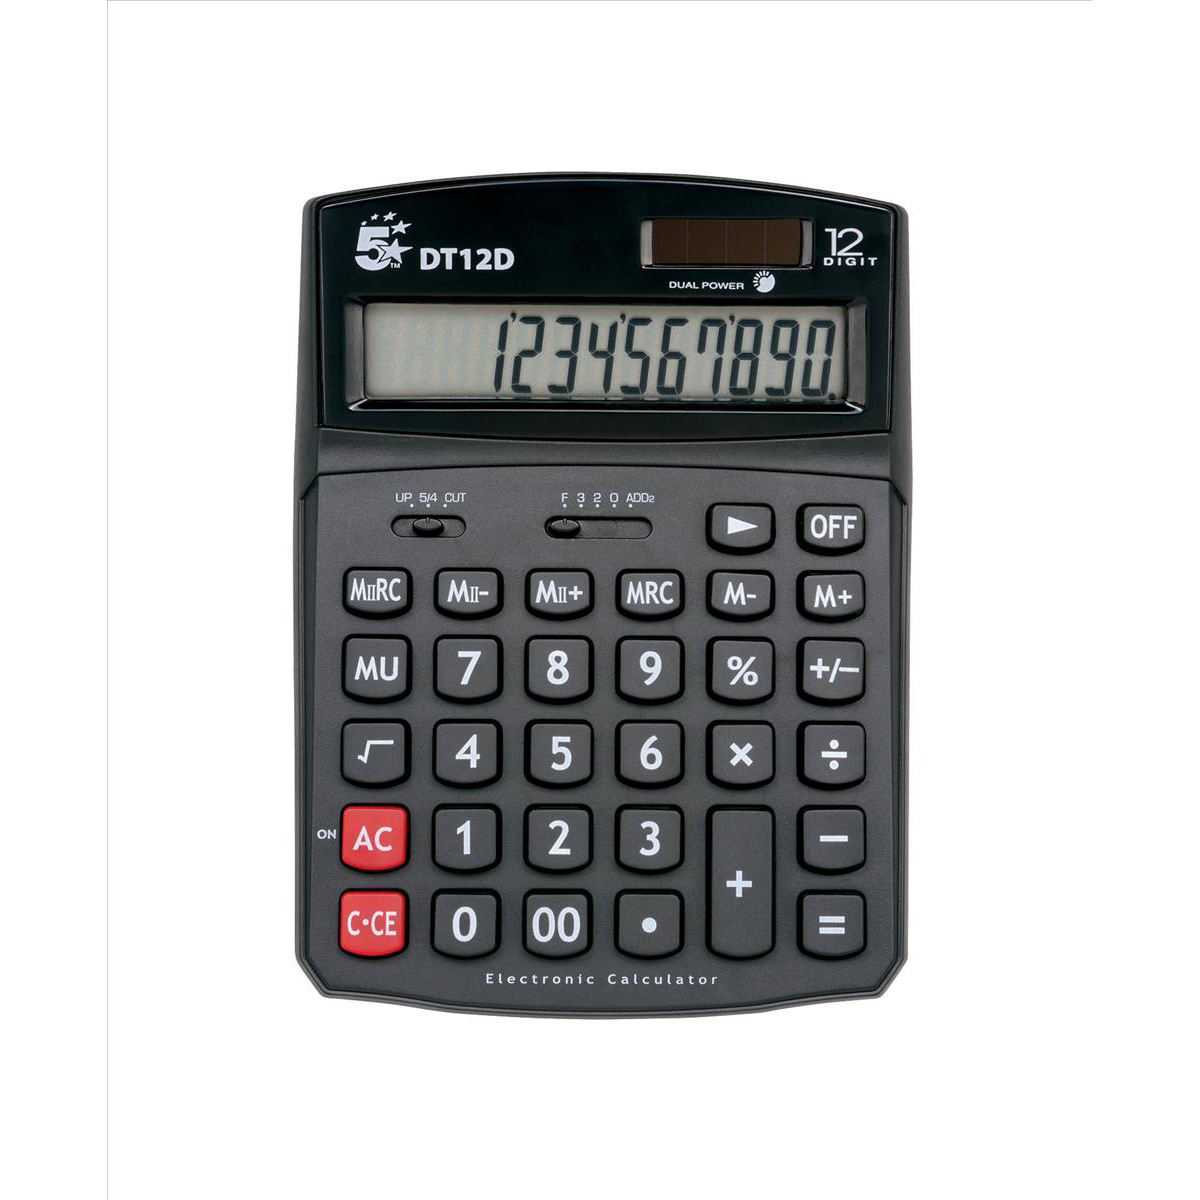 5 Star Office Desktop Calculator 12 Digit 2x3 Key Memory Battery/Solar Power 91x11x125mm Black